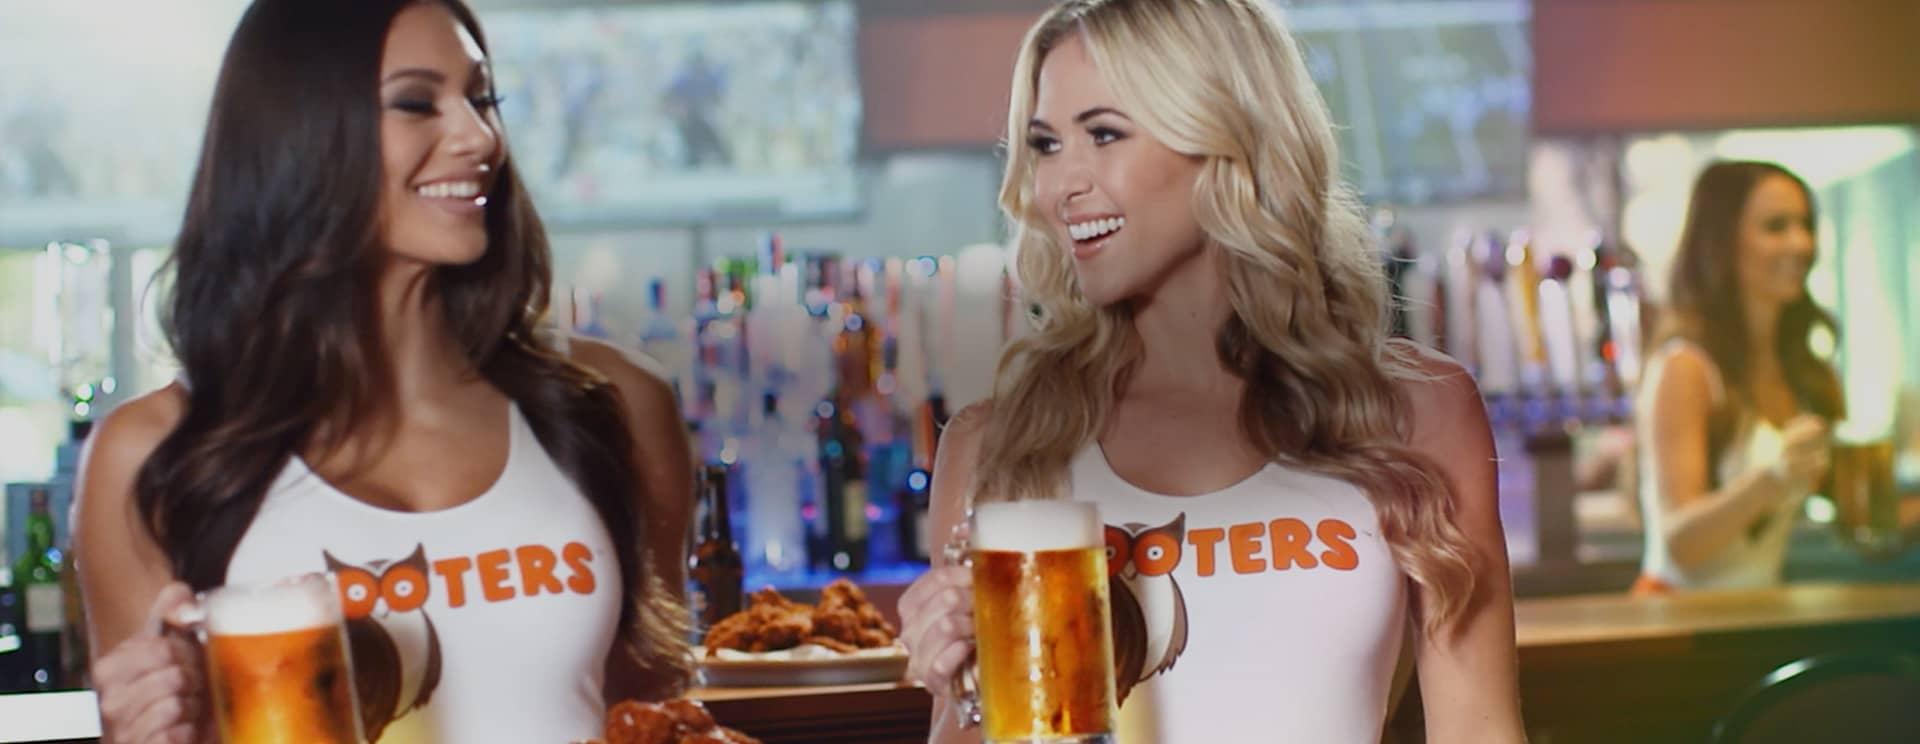 Hooters Hero Image